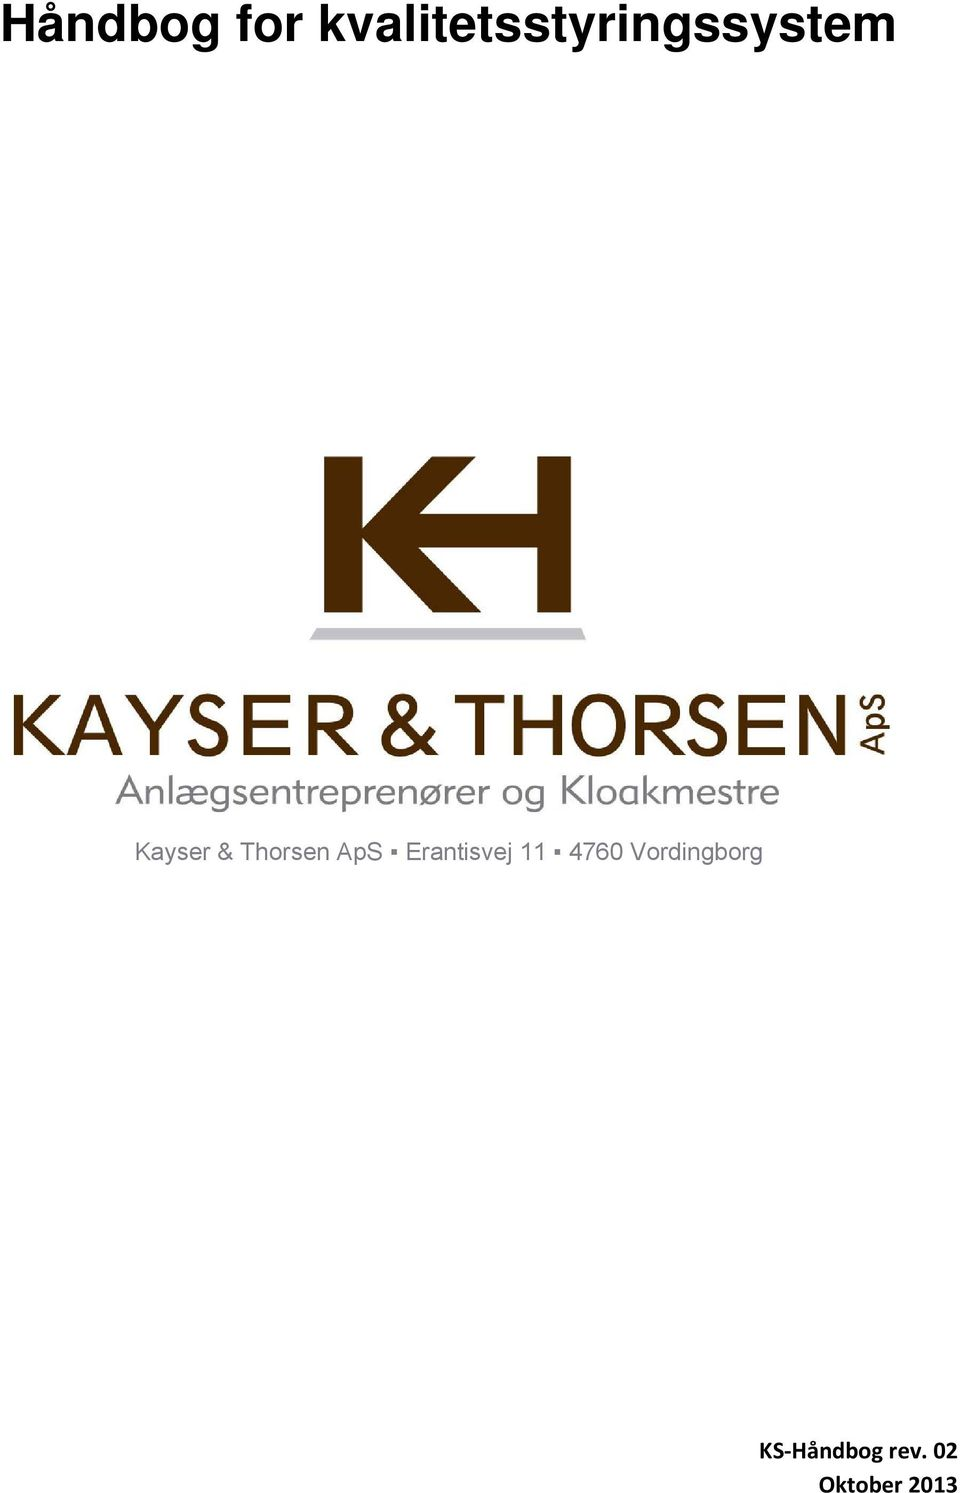 Kayser & Thorsen ApS